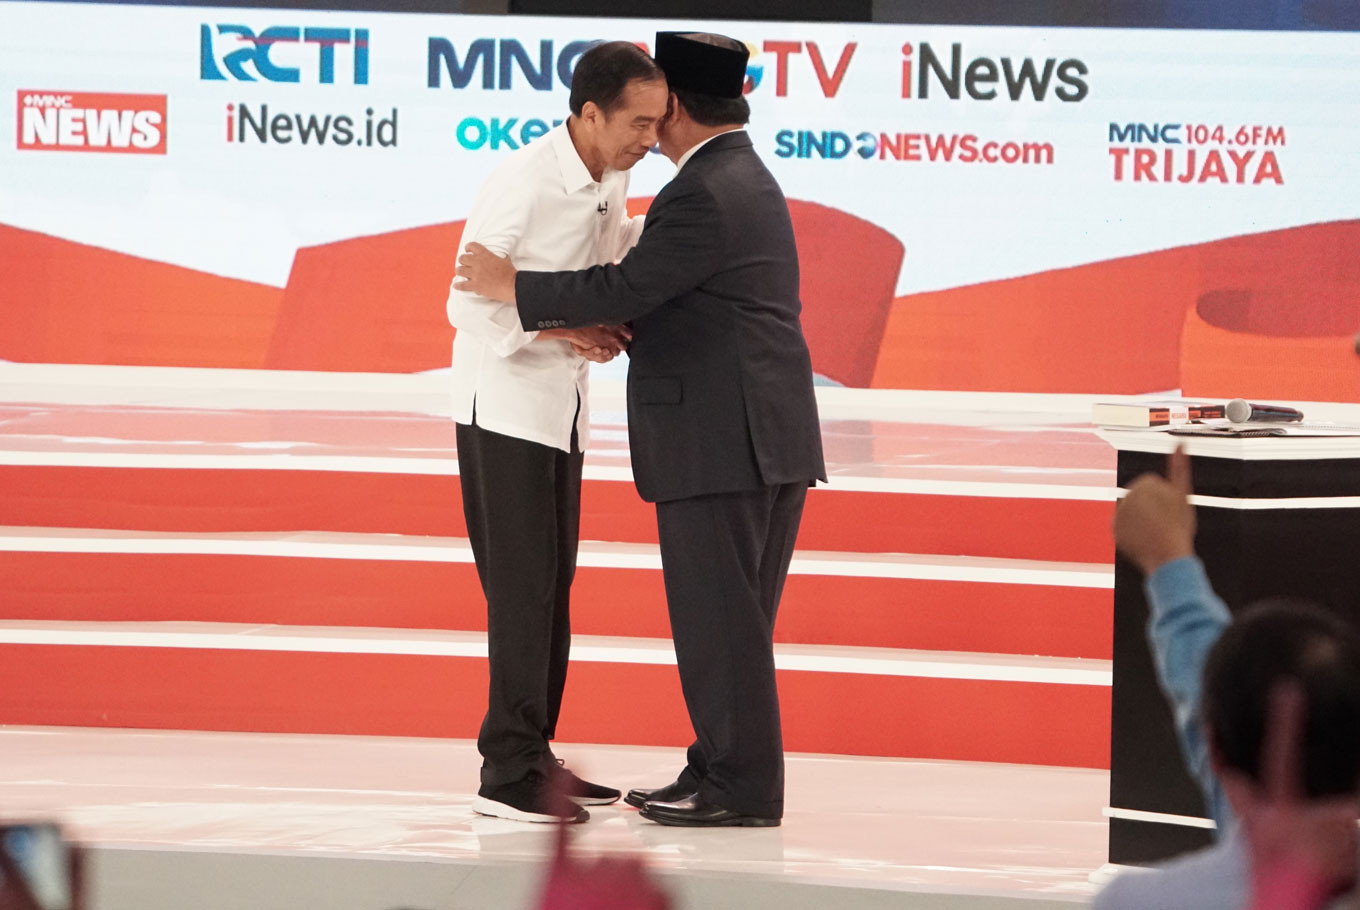 Jokowi reported to Bawaslu for remark on Prabowo's land ownership